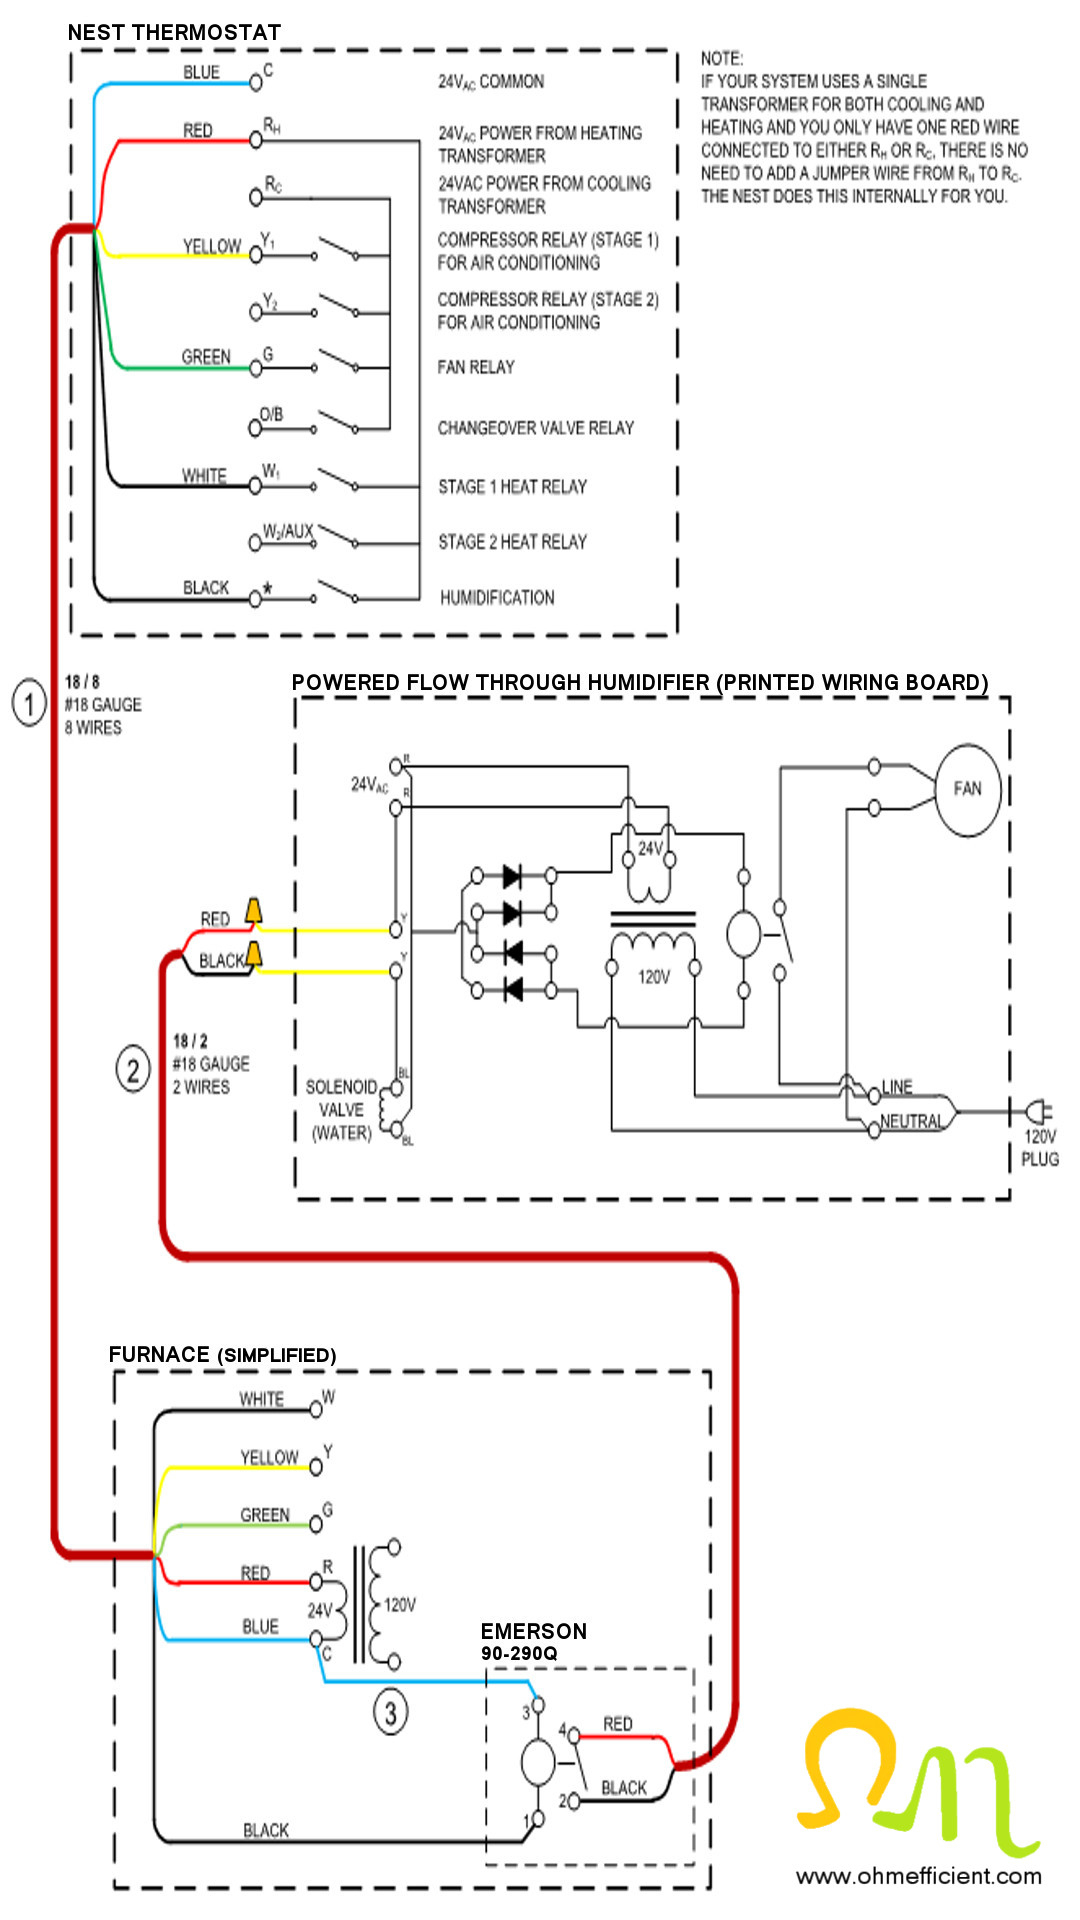 Nest Thermostat Humidity Wiring Diagram